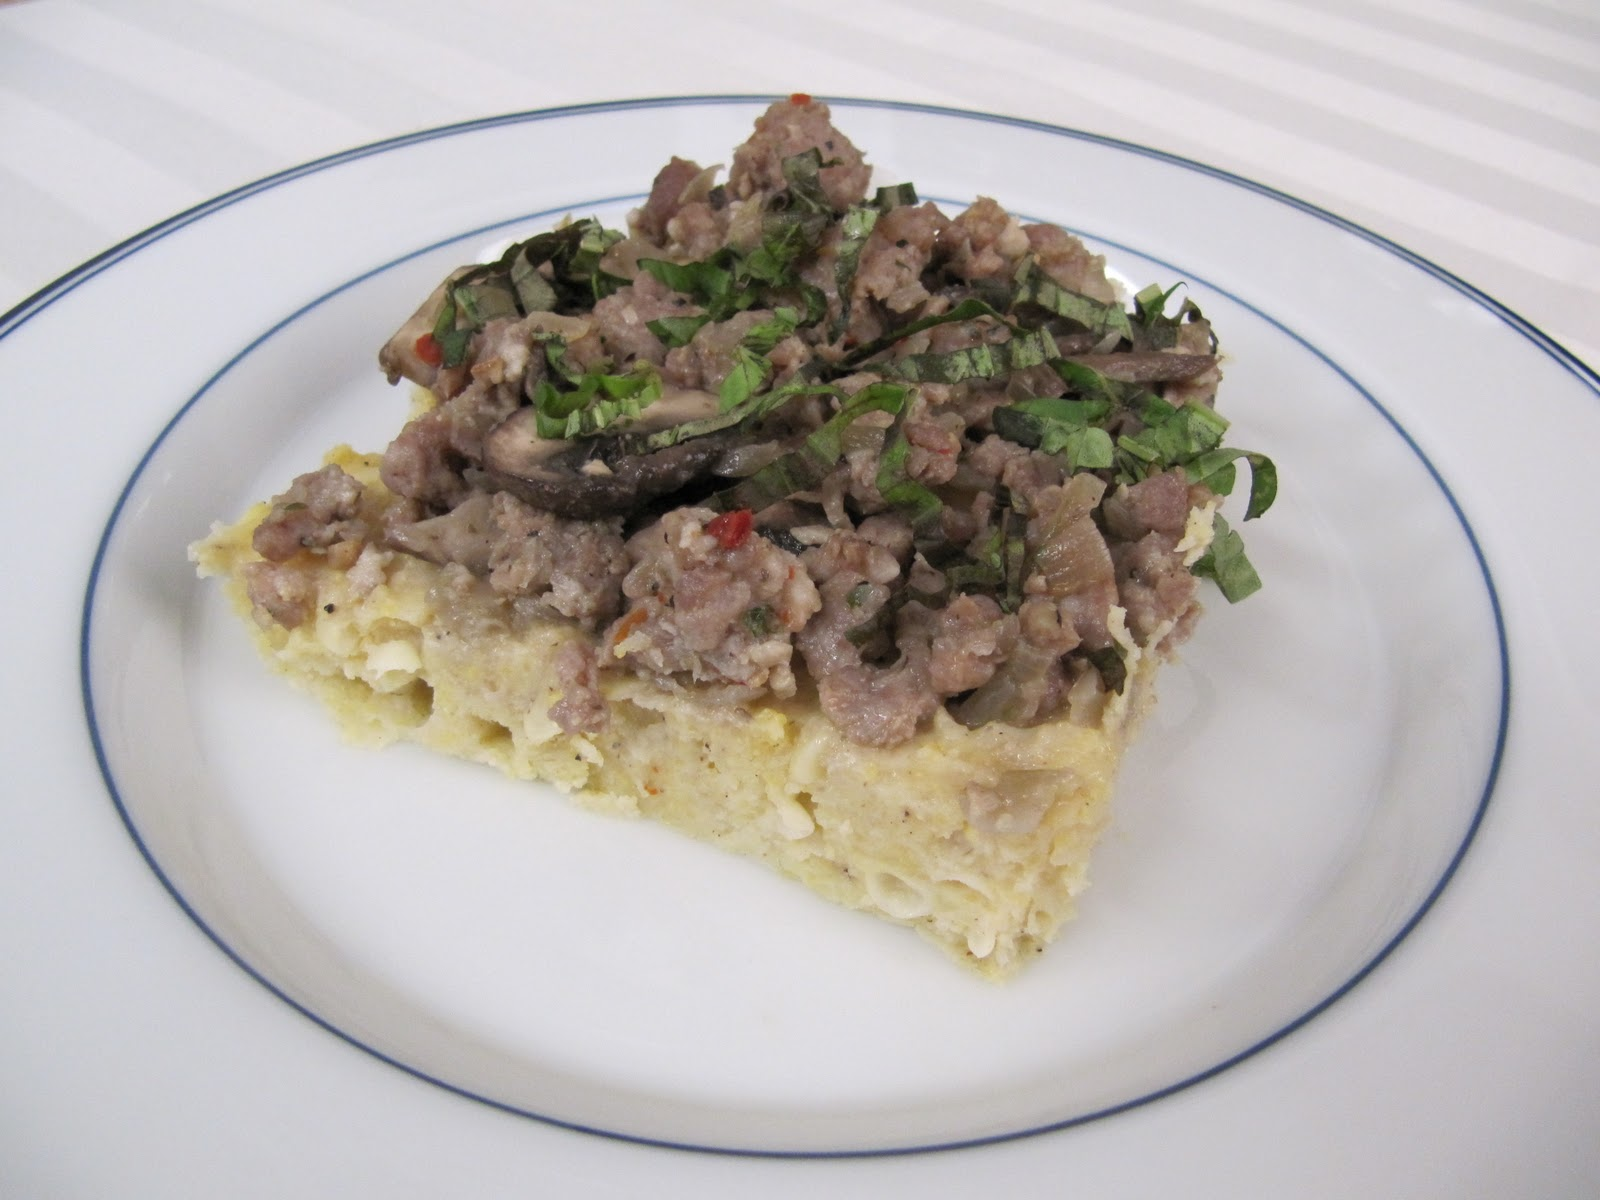 Krupcakes: Oven Baked Polenta with Sausage and Mushrooms